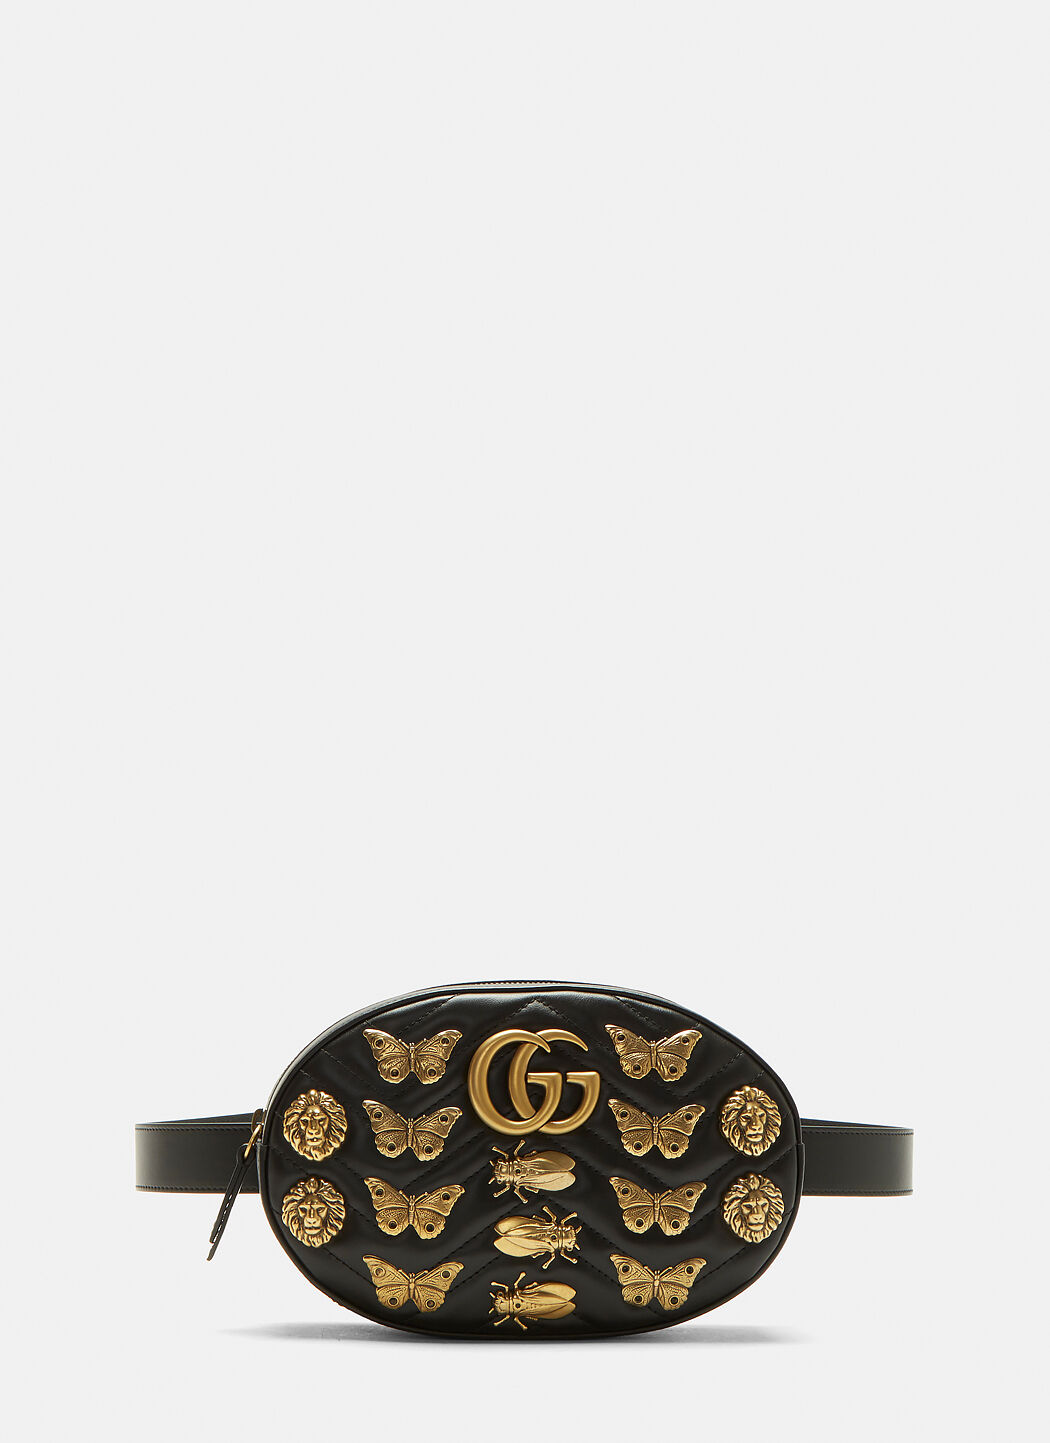 43b5ccff7cba Gucci Waist Bag With Insects | Stanford Center for Opportunity ...